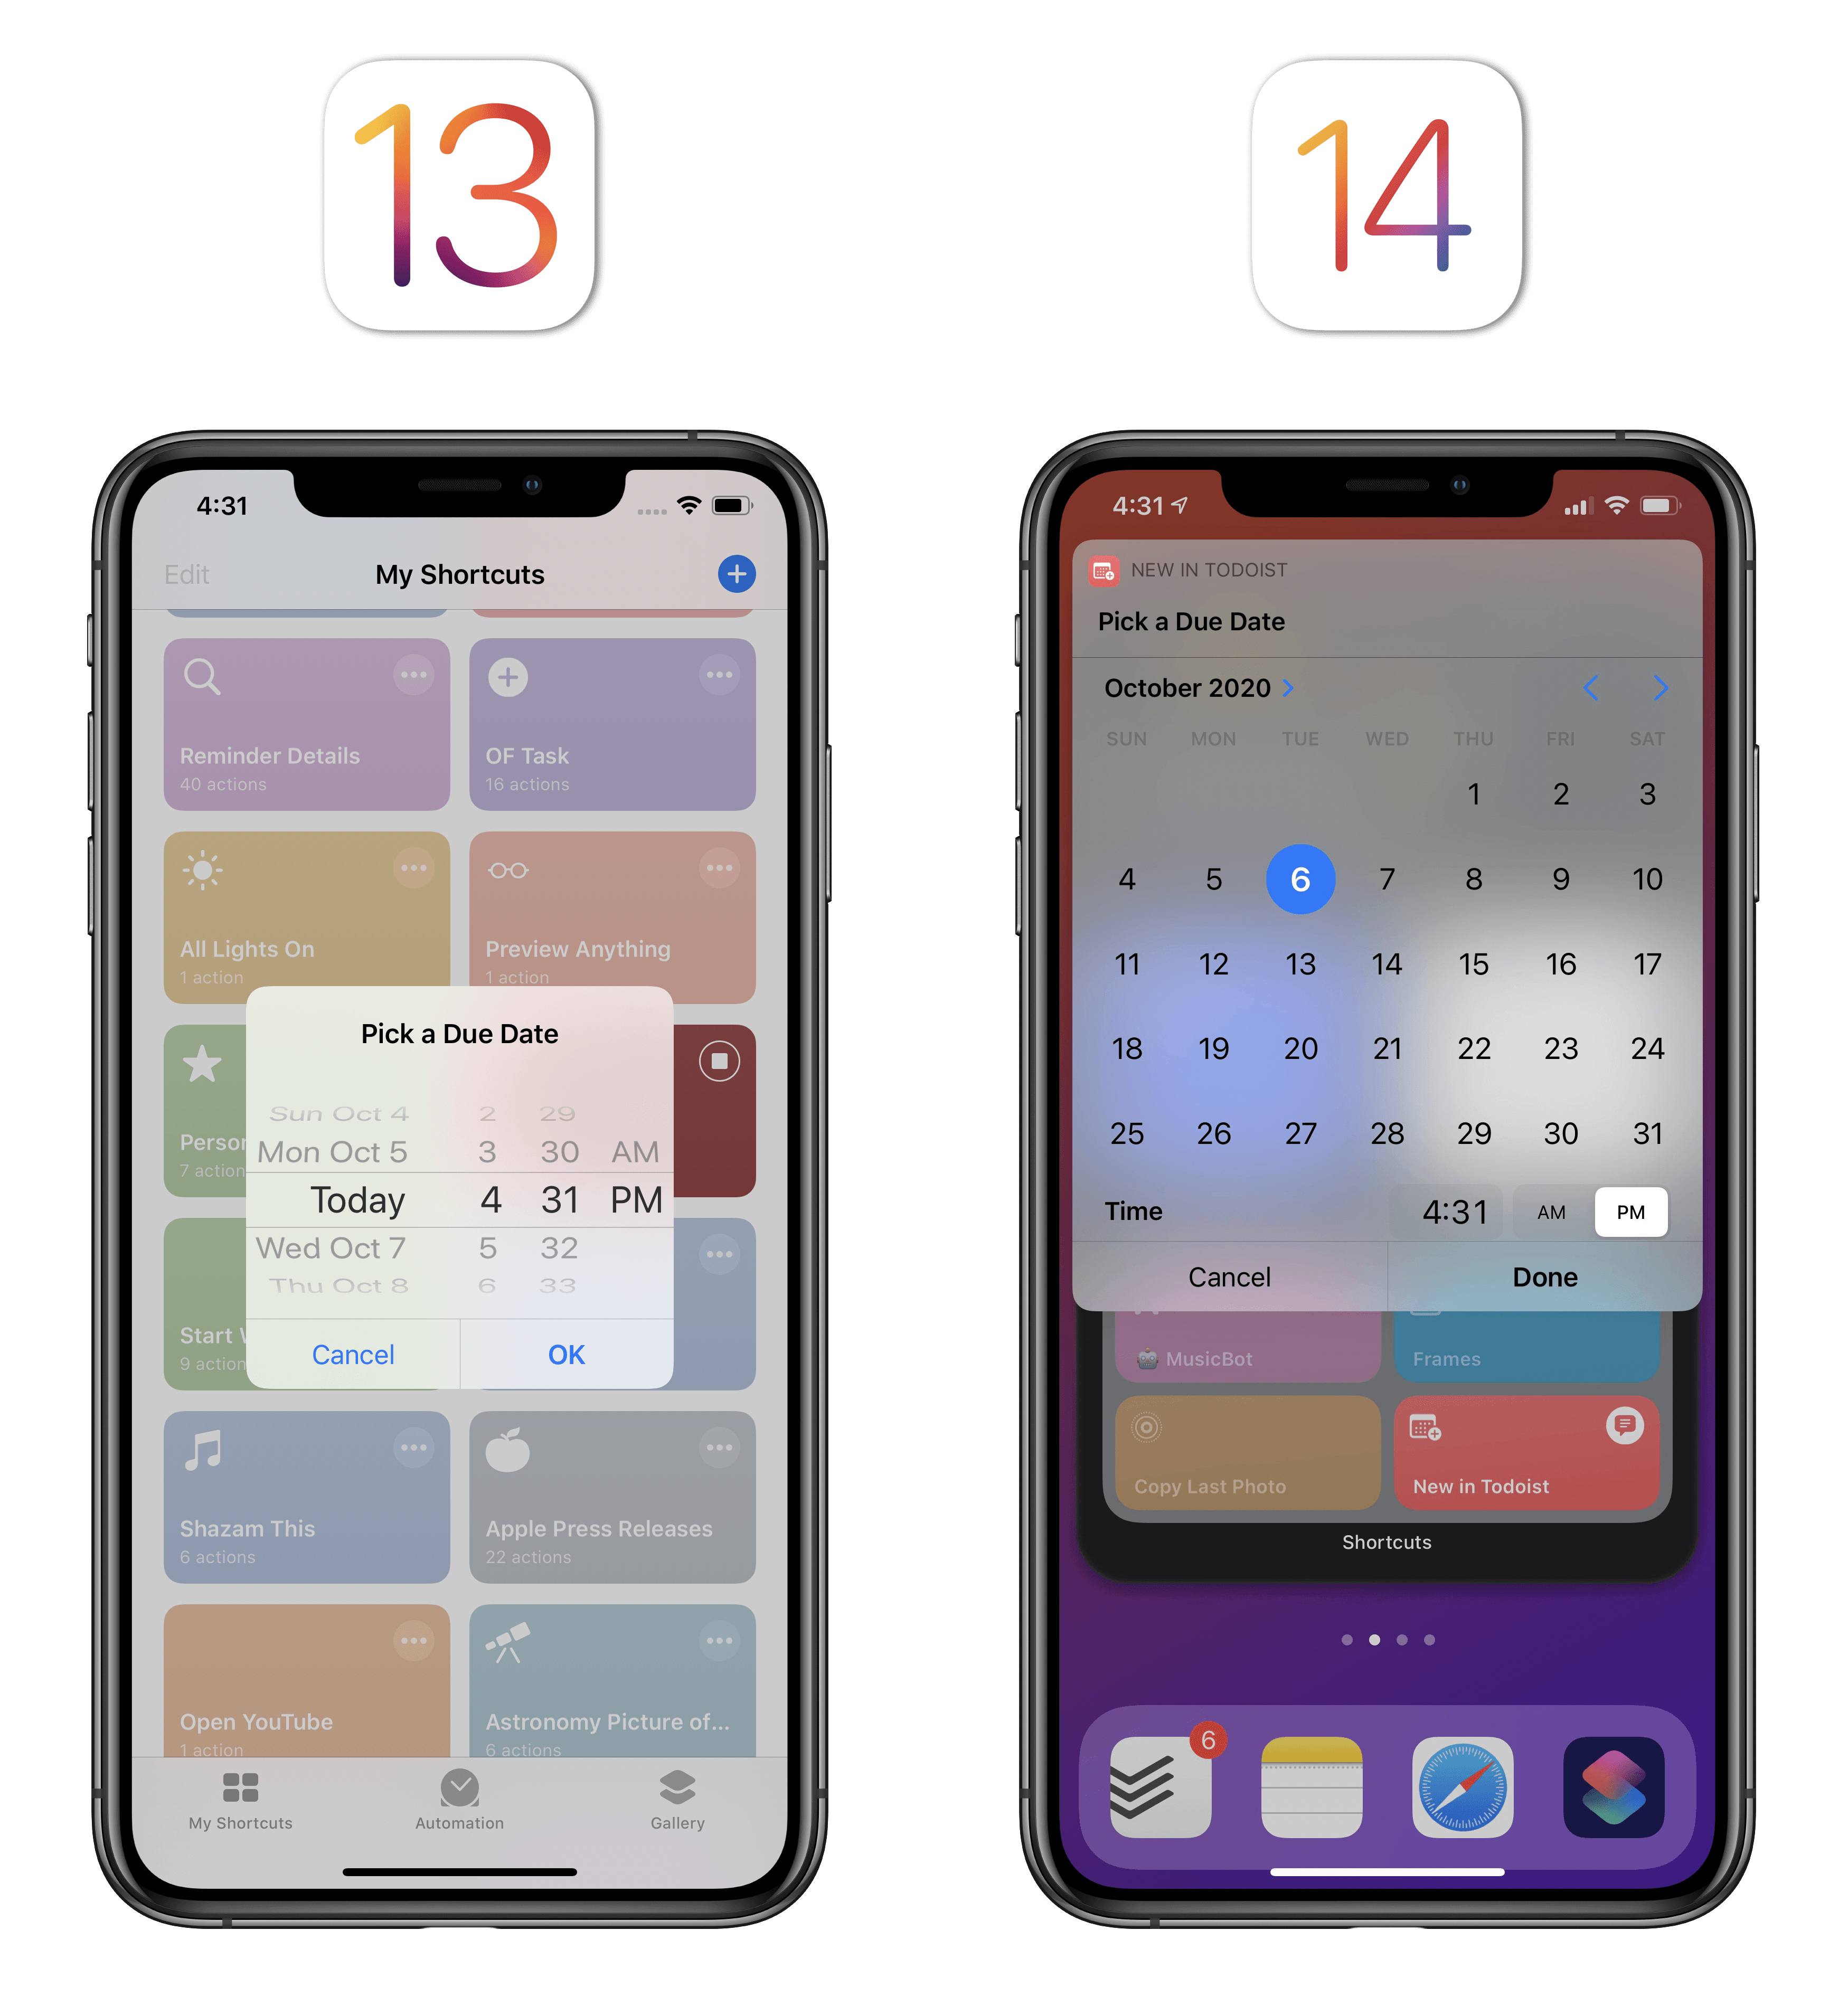 The date picker is now a compact monthly calendar.